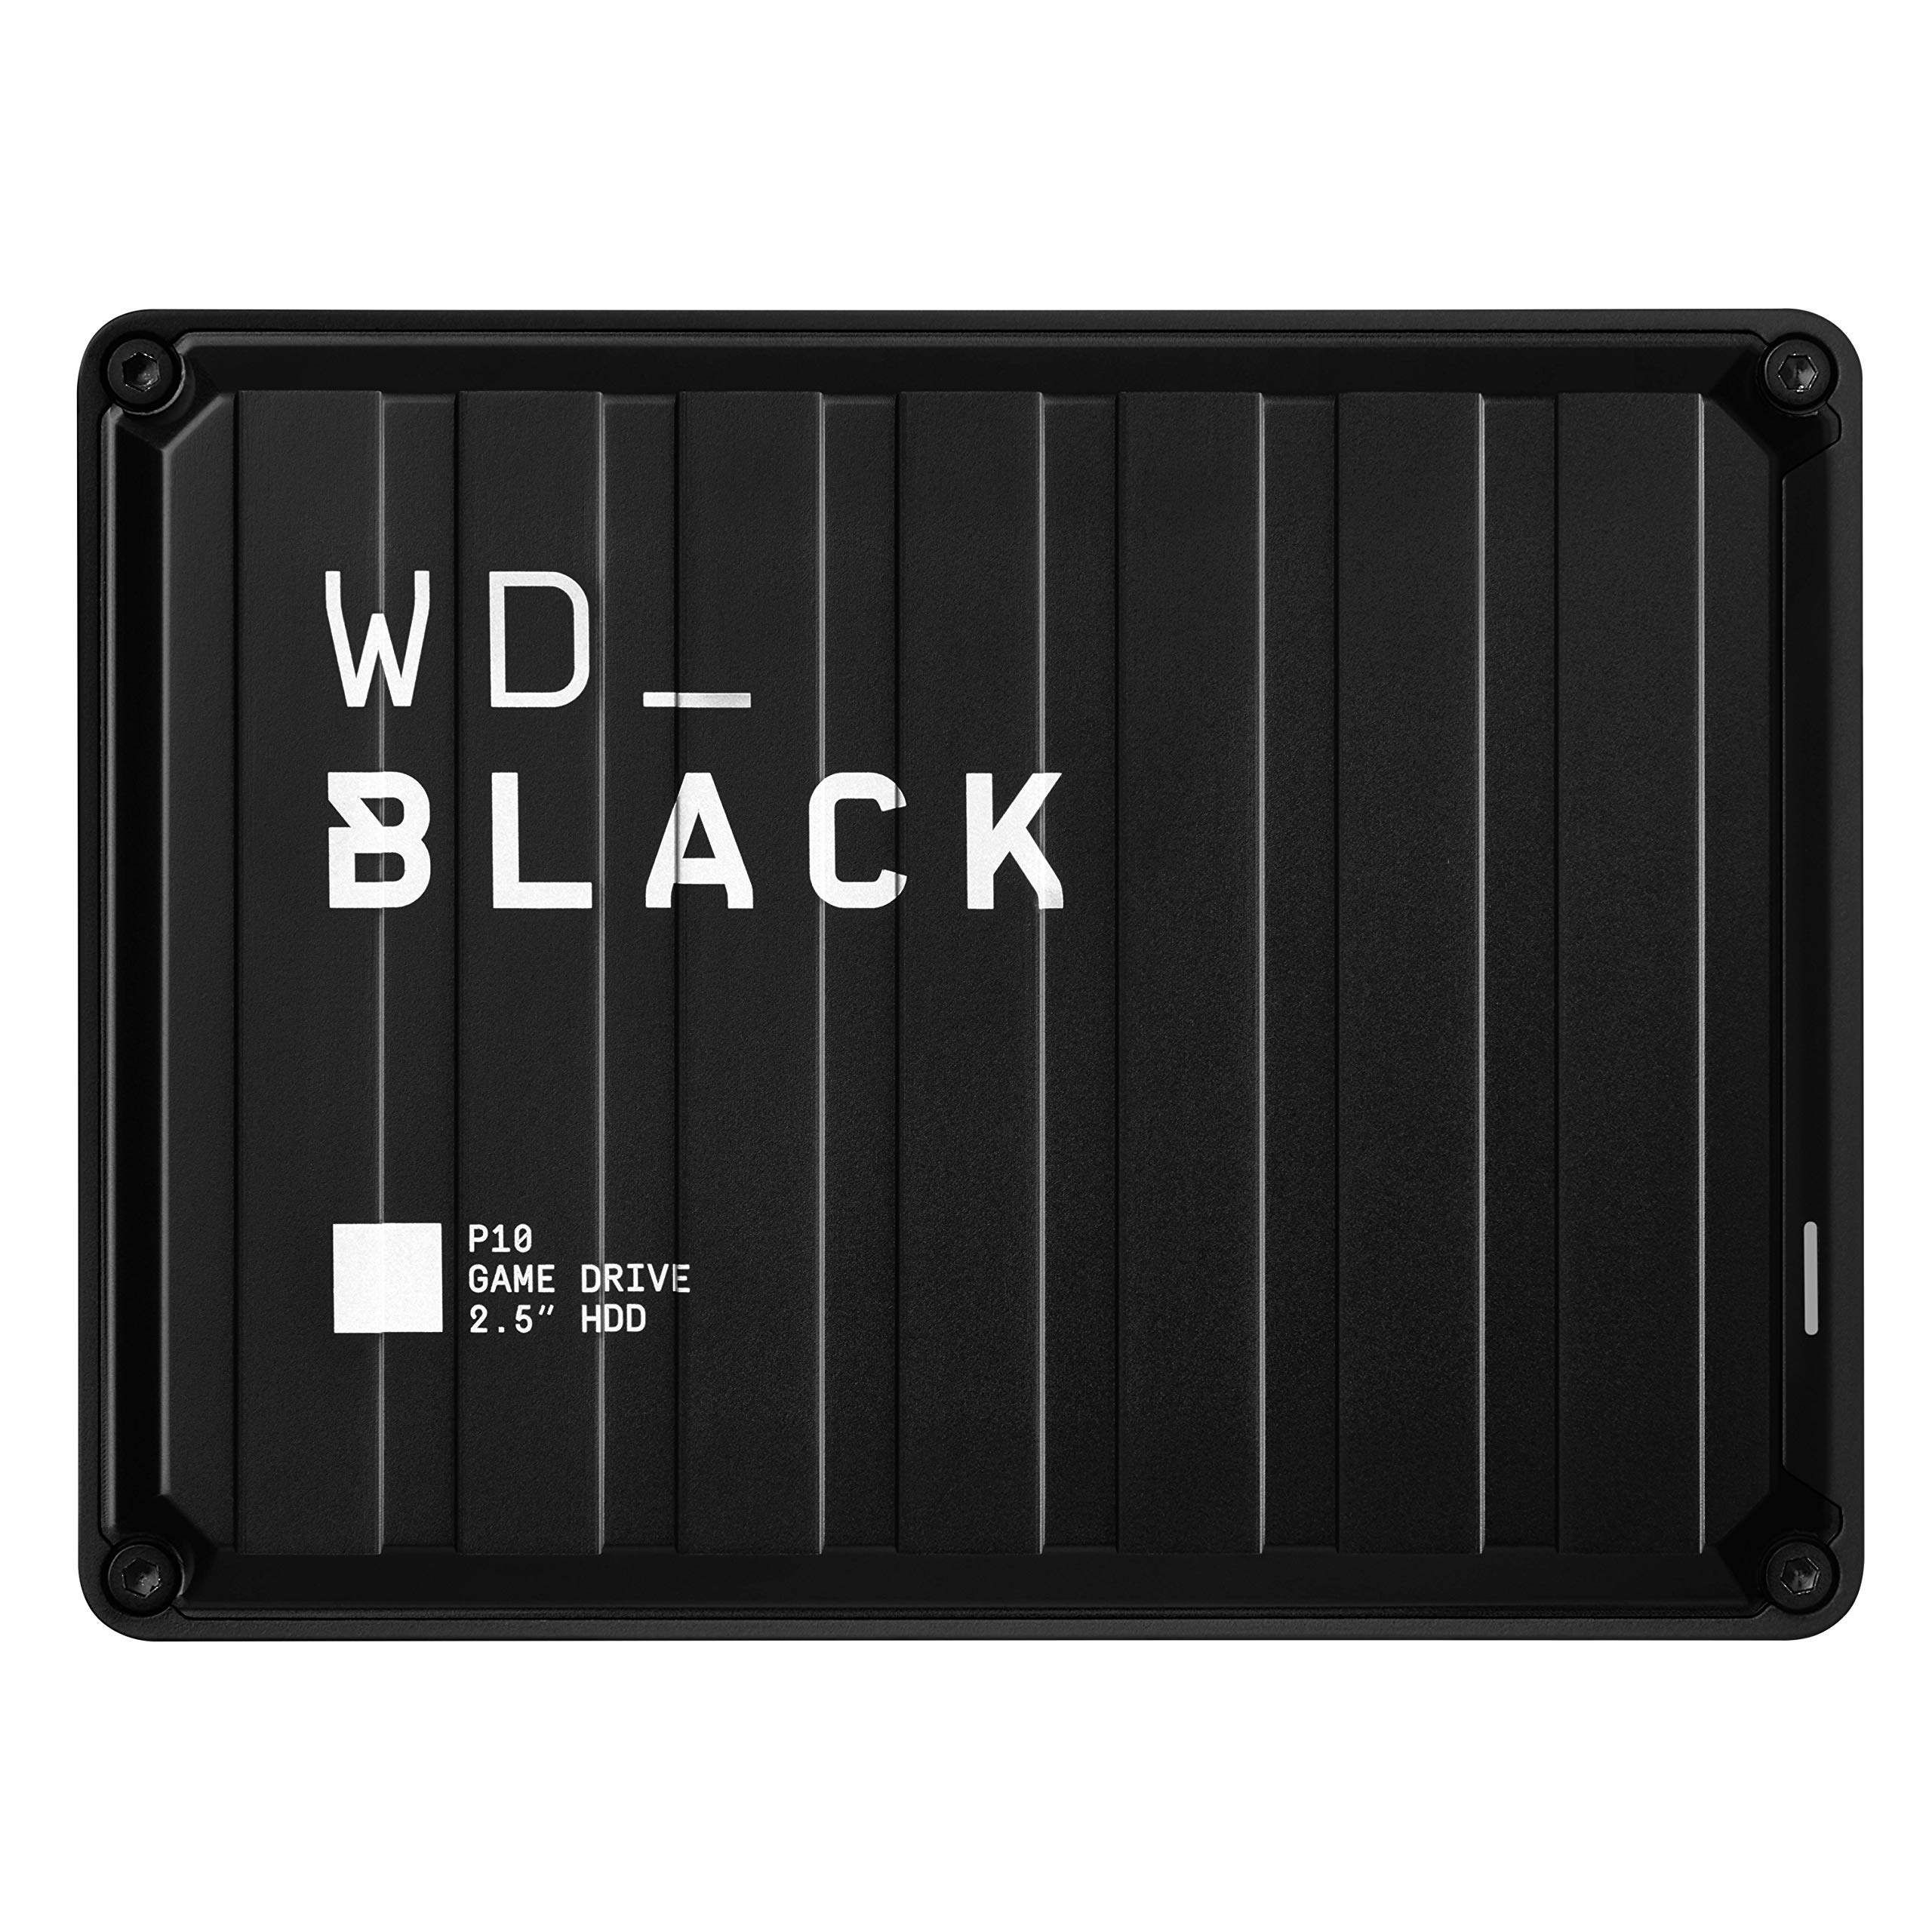 WD Black 2TB P10 Game Drive, Compatible with PS4, Xbox One, PC, Mac - WDBA2W0020BBK-WESN by Western Digital